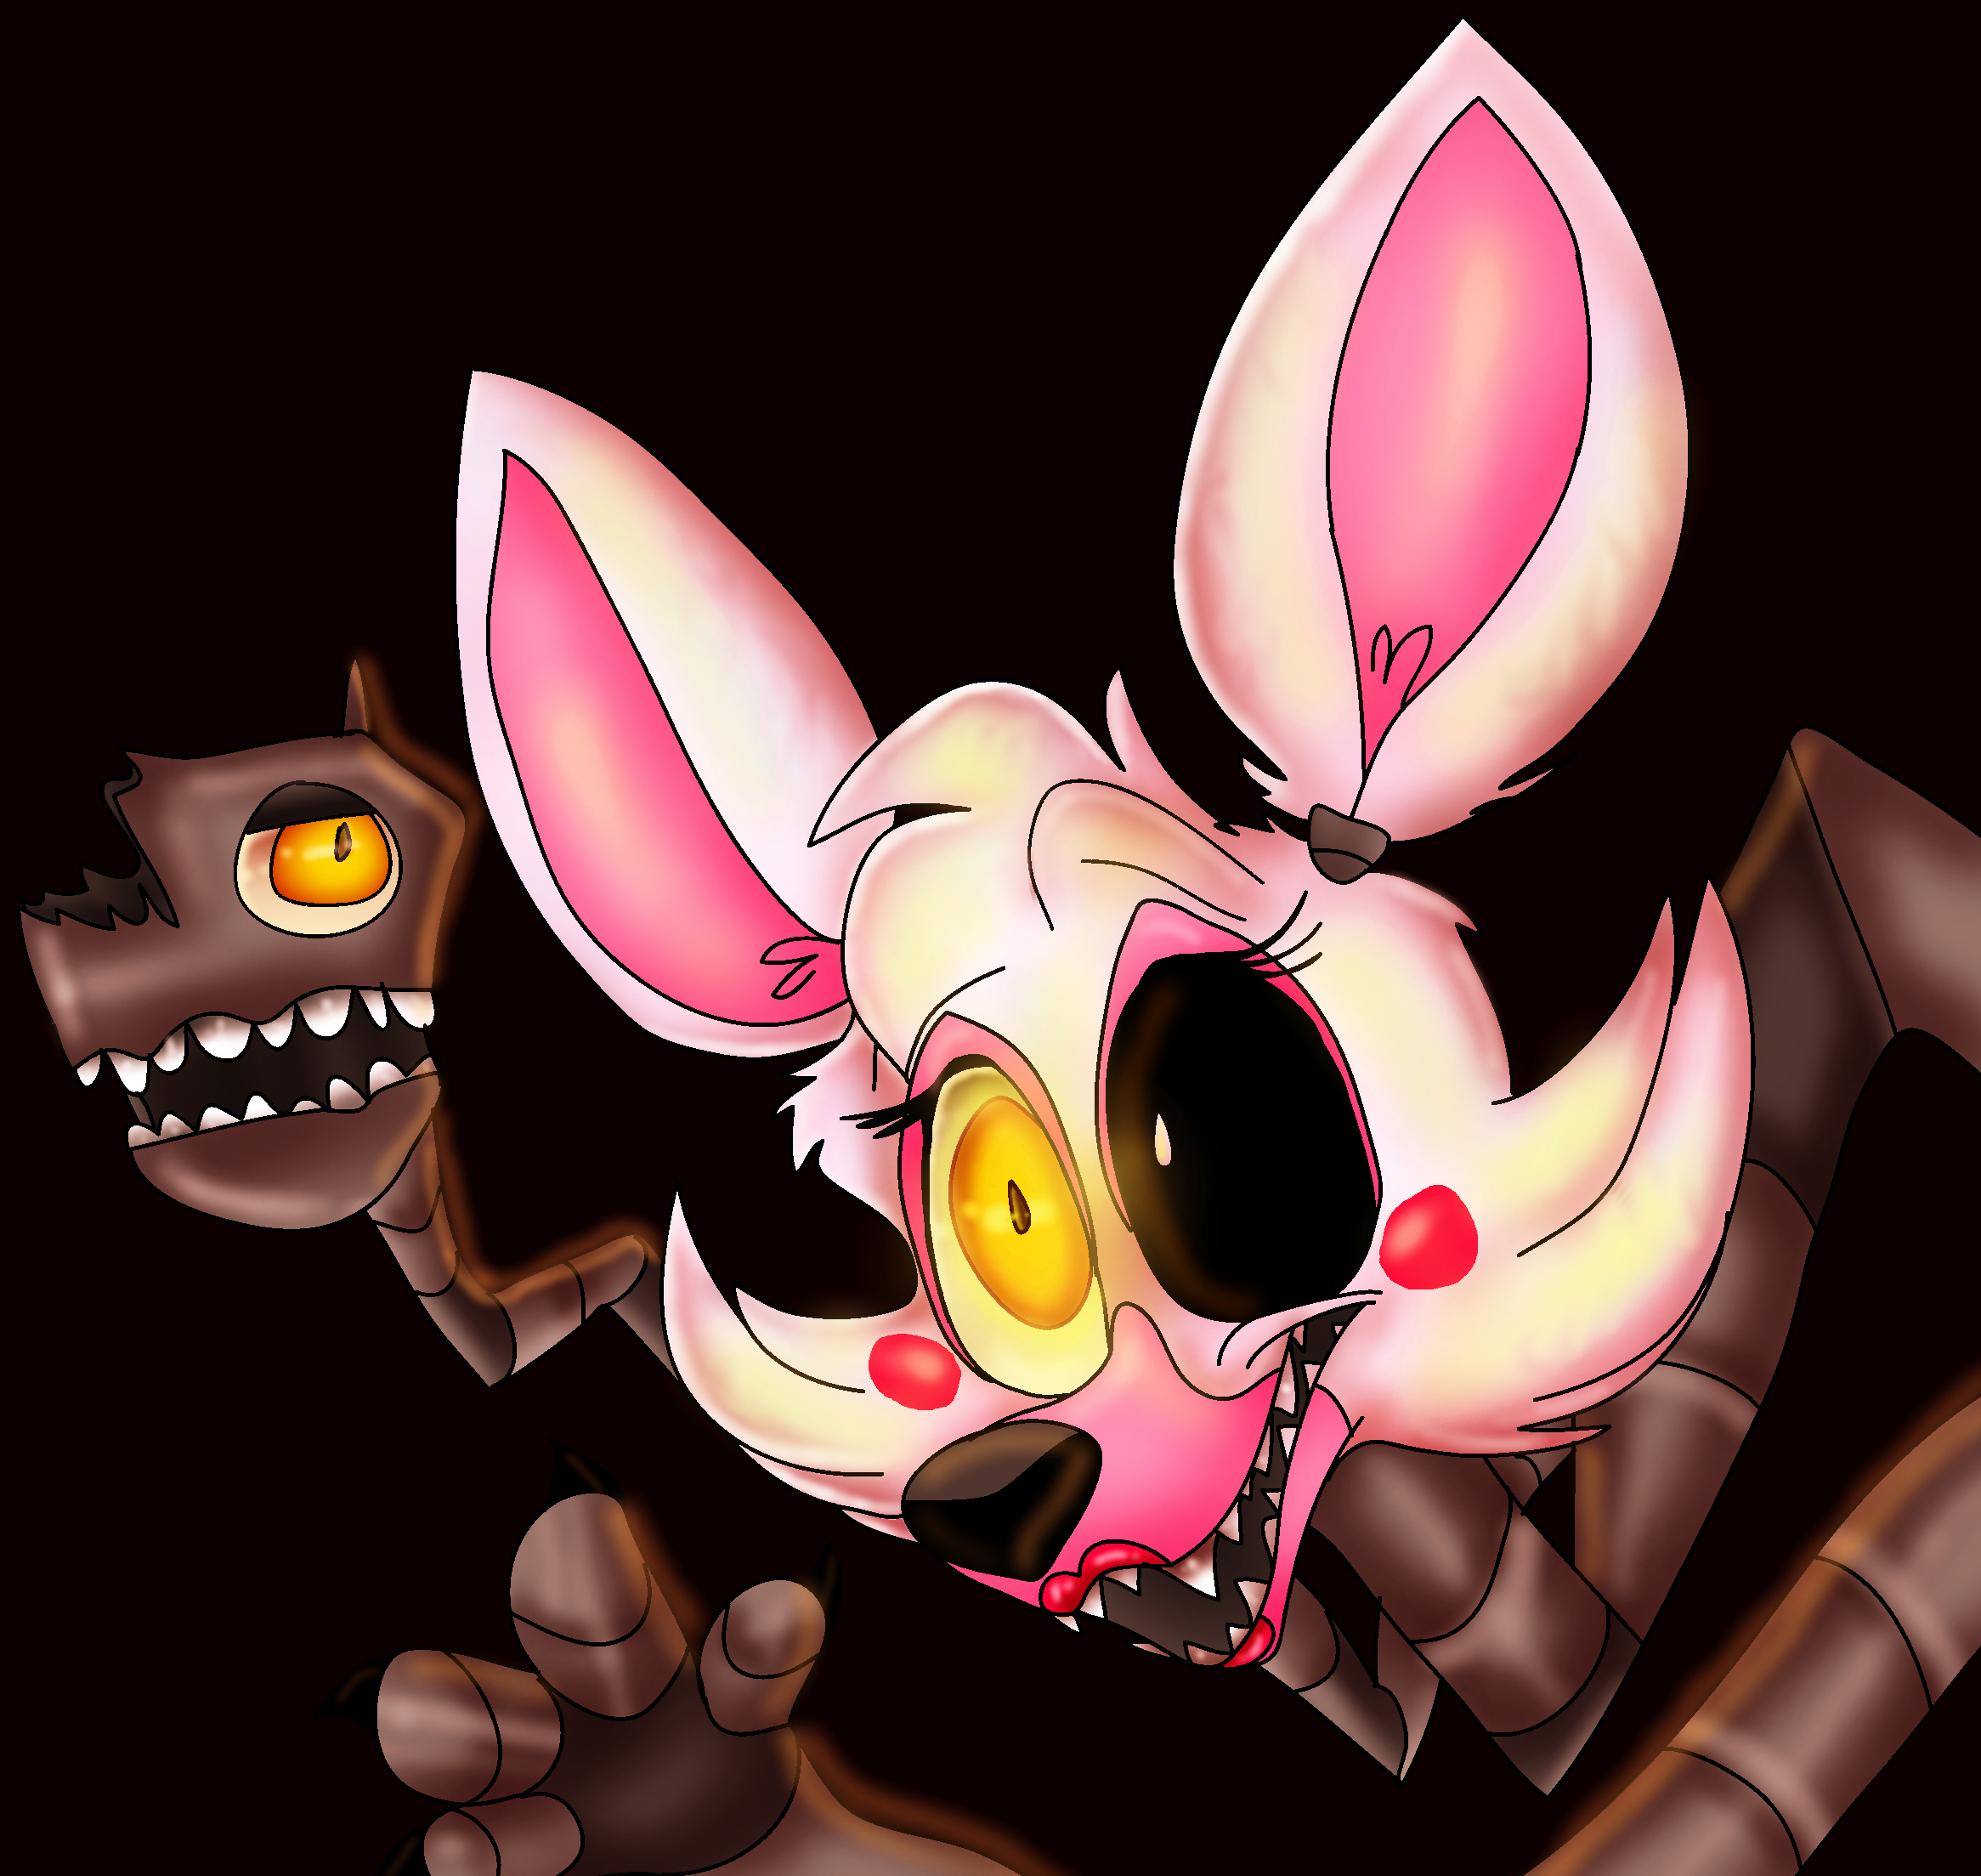 Mangle By PlagueDogs123 On DeviantArt